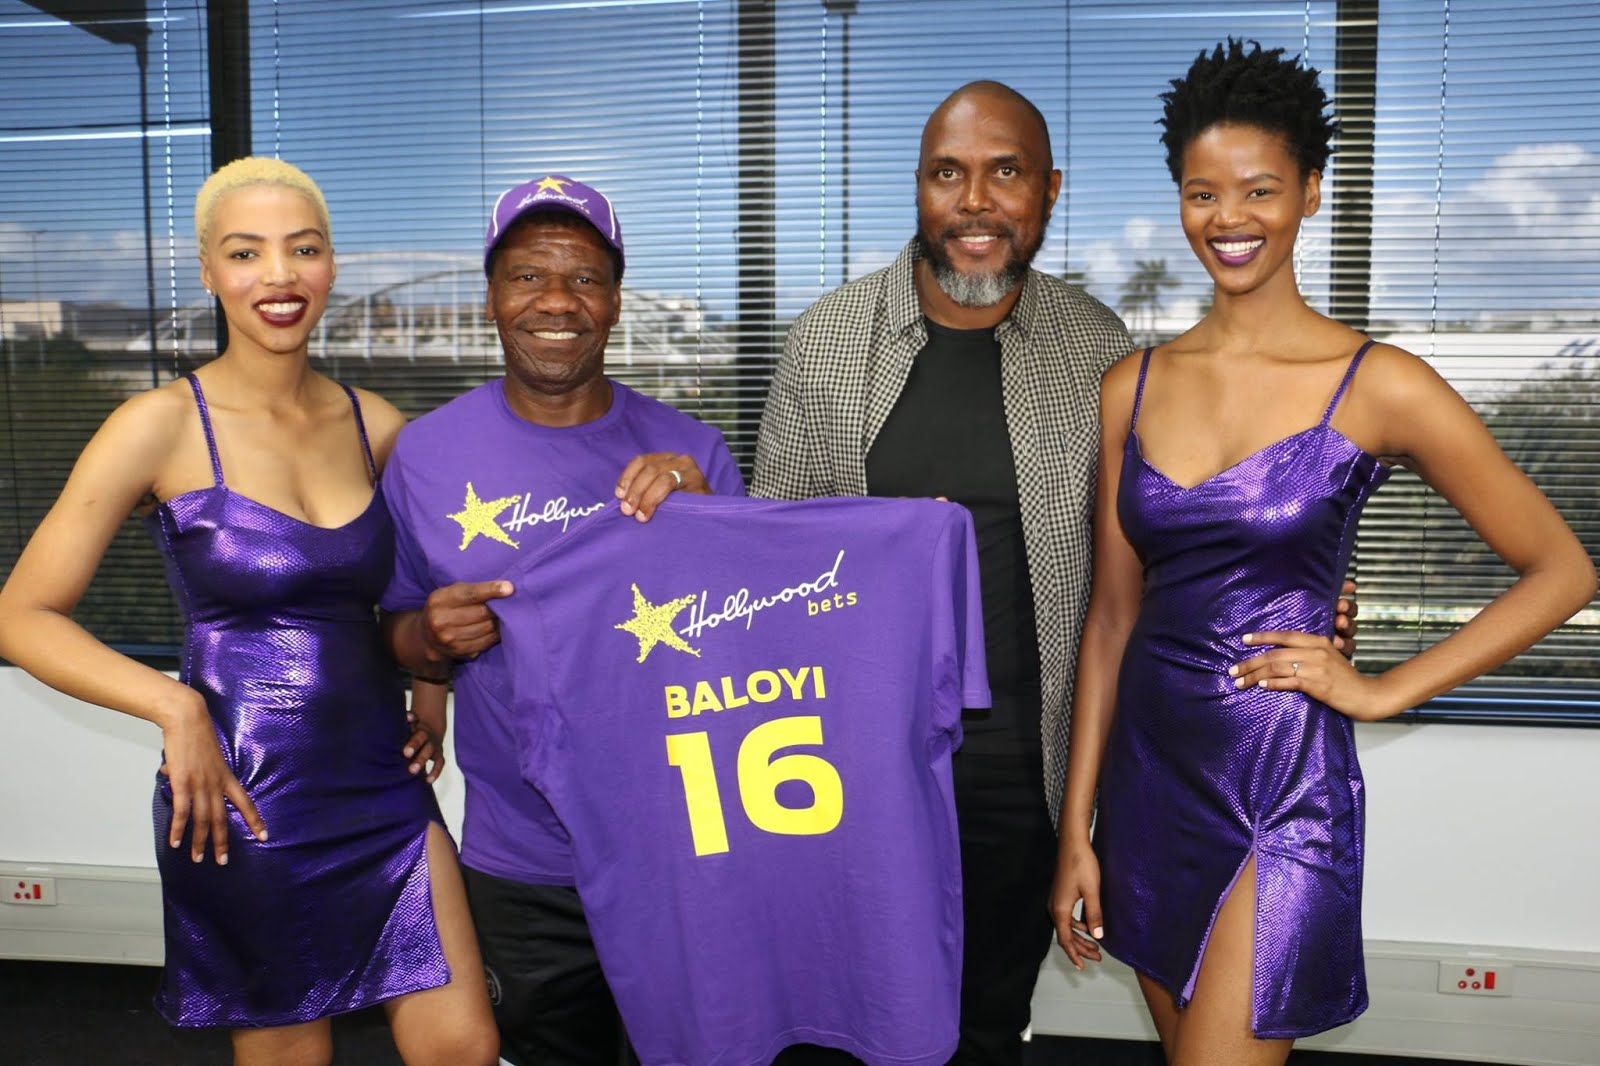 Brian Baloyi with Jerry Sikhosana and Hollywoodbets Girls - Announcement of new Hollywoodbets Brand Ambassador - Number 16